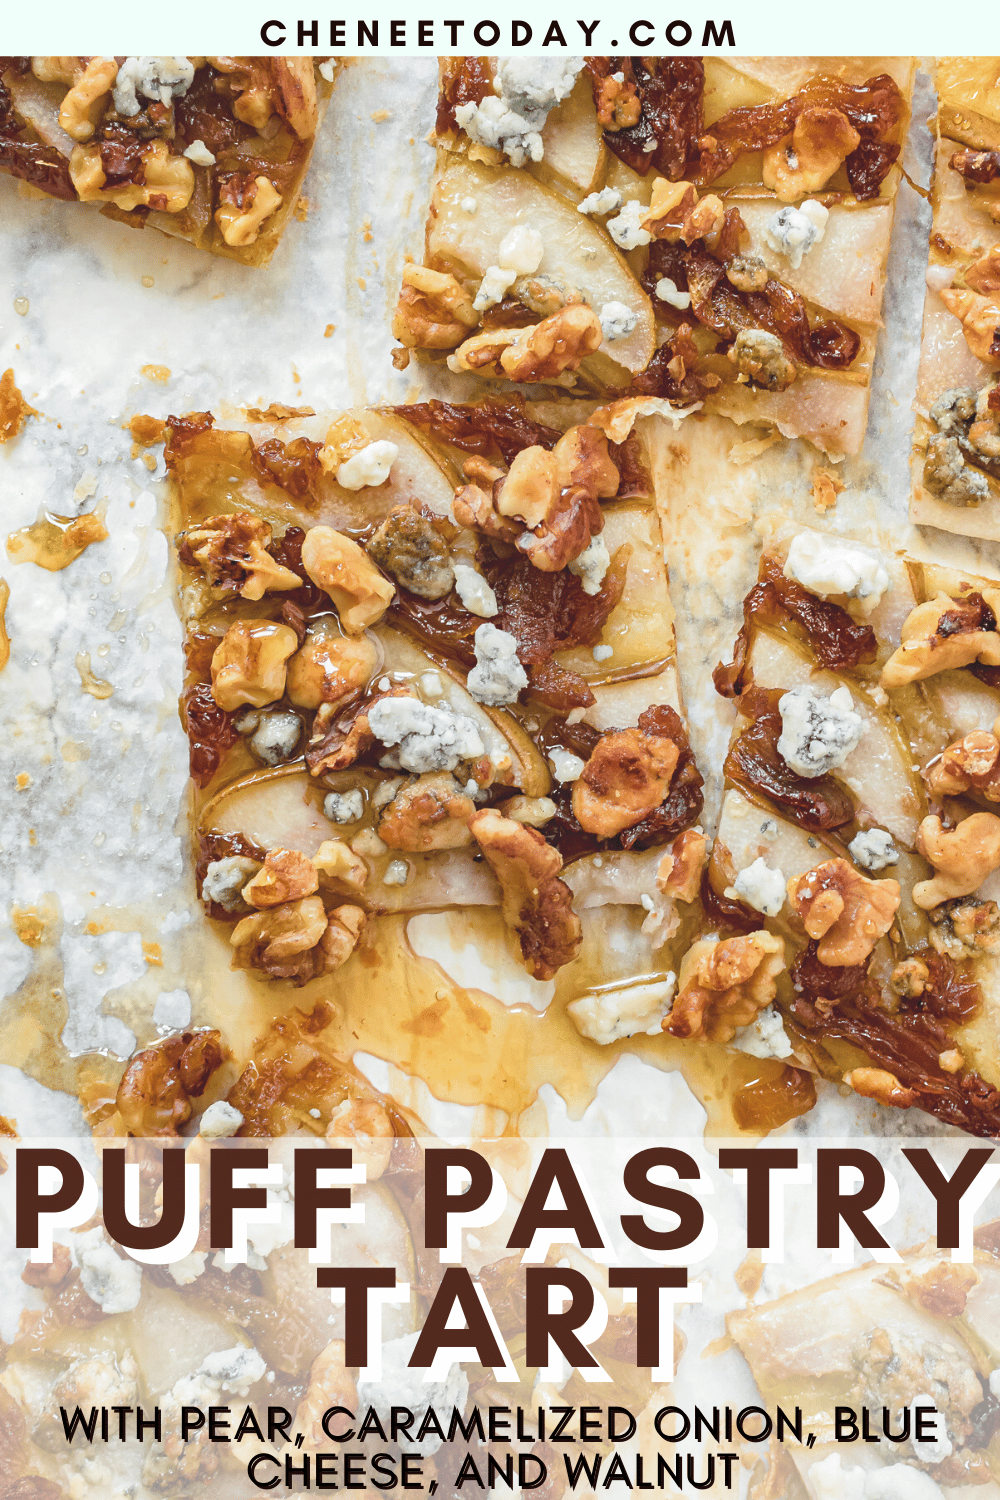 Puff Pastry Tart Recipe with Pear and Caramelized Onion, and Blue Cheese | Chenée Today